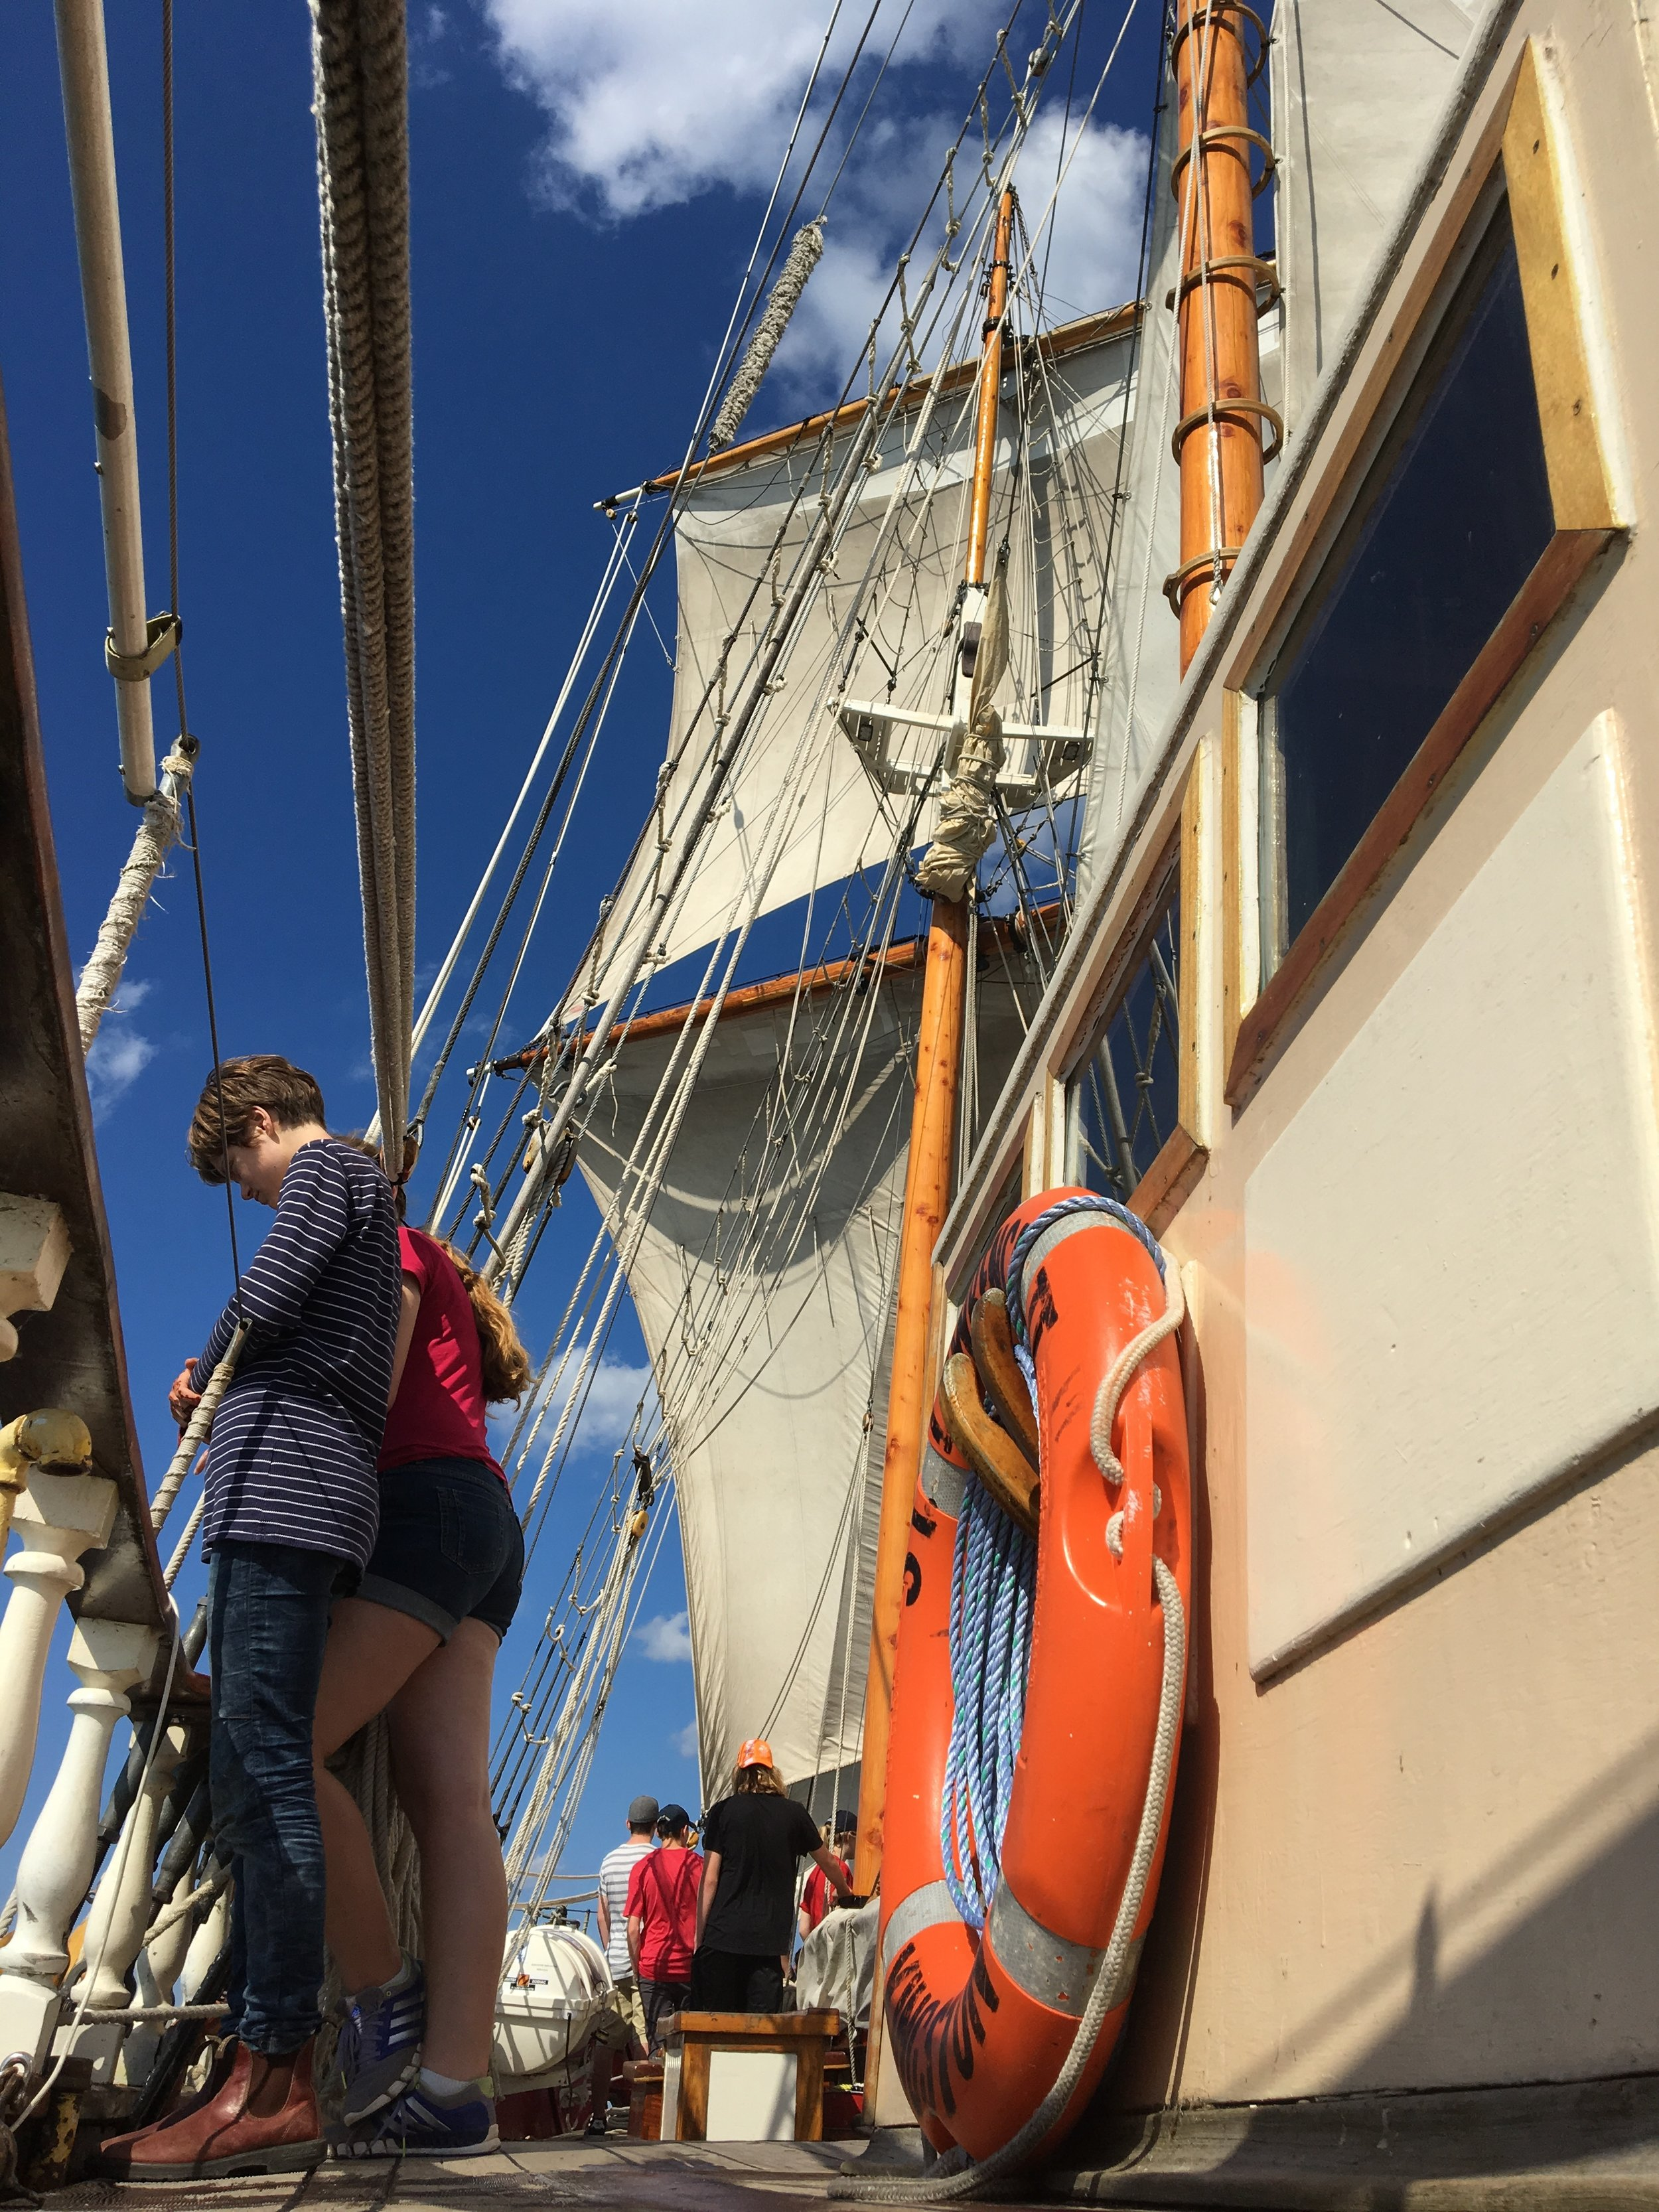 A Tall Ship summer camp for youth looking for adventure, fun, friendship, and to explore their world. -